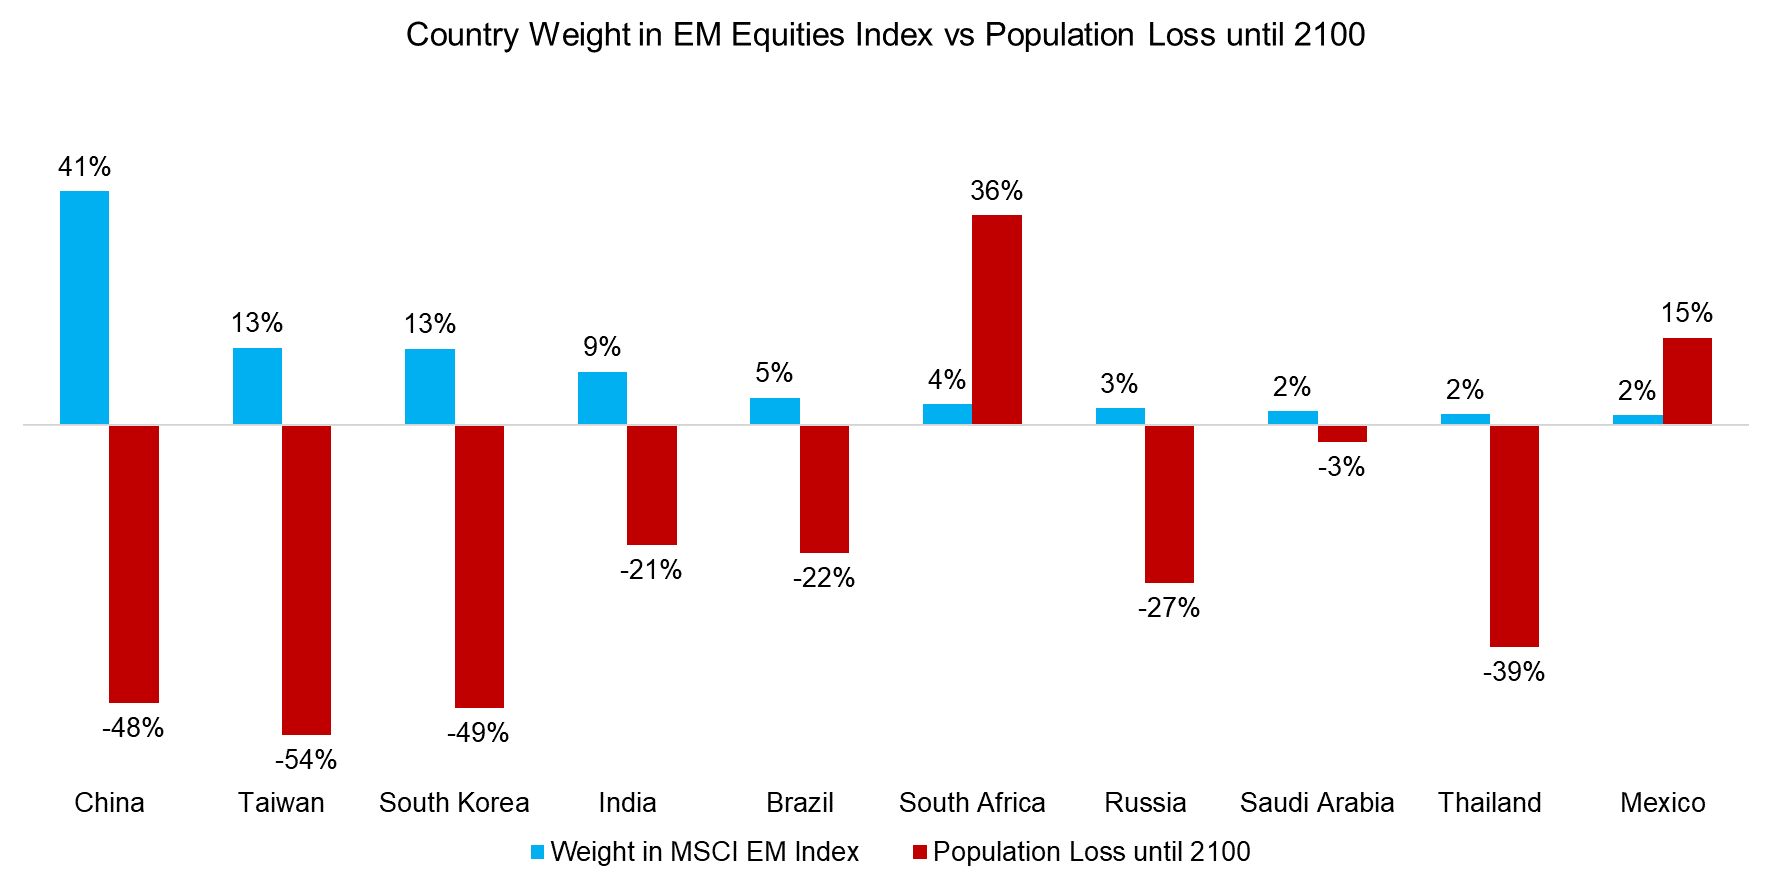 Country Weight in EM Equities Index vs Population Loss until 2100